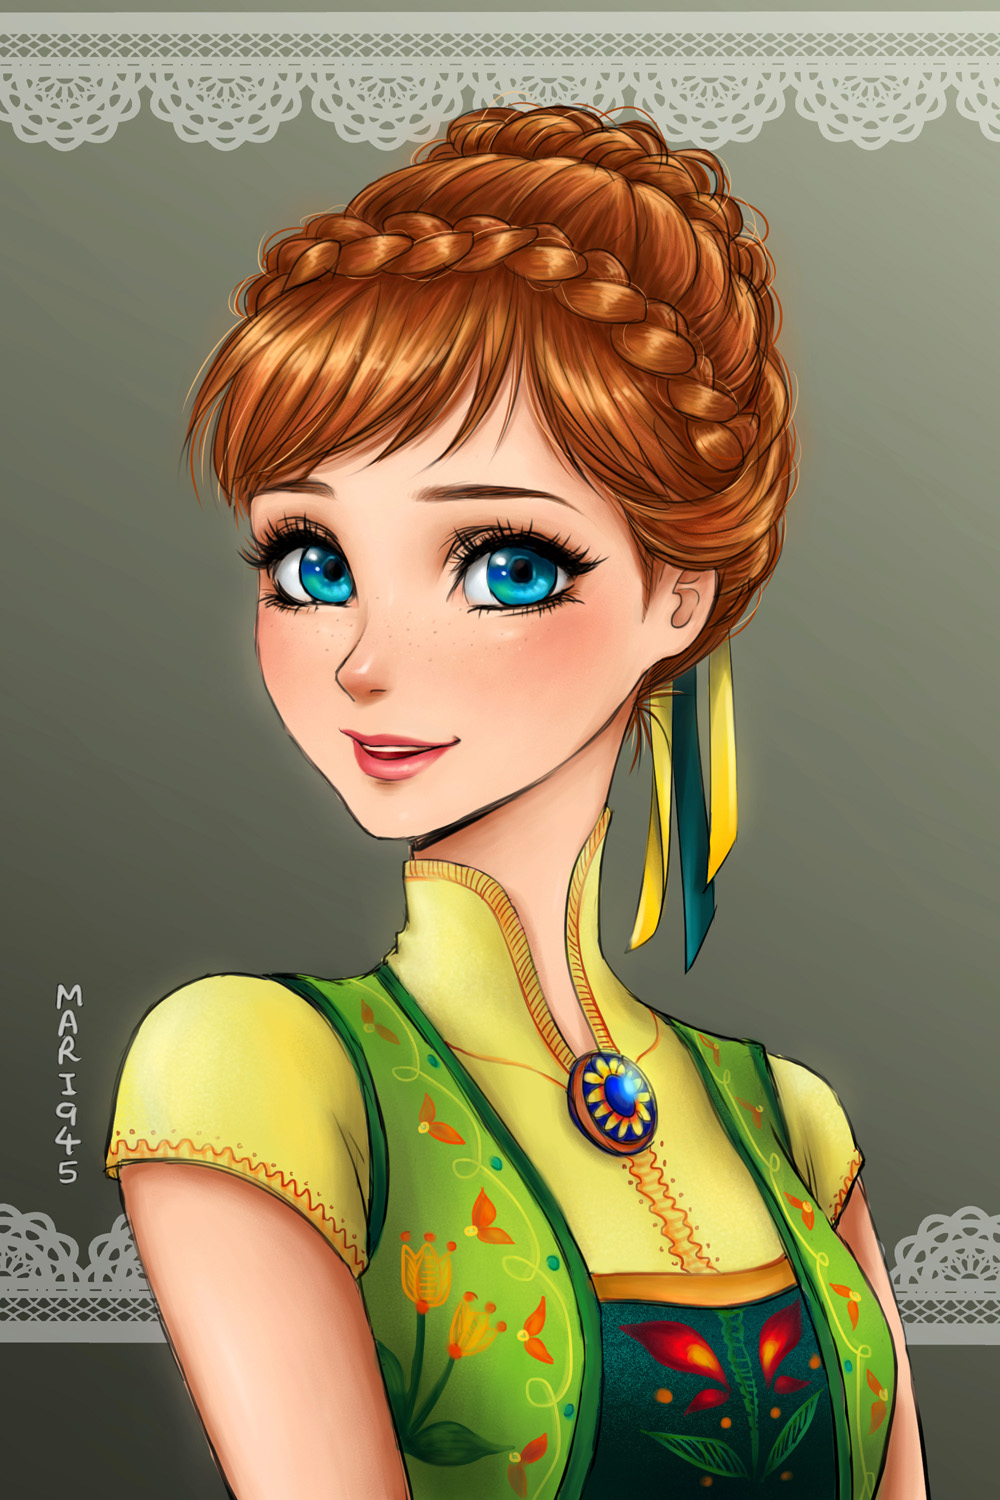 Disney Princesses Re-Imagined in Anime Portraits - Digital Art Mix